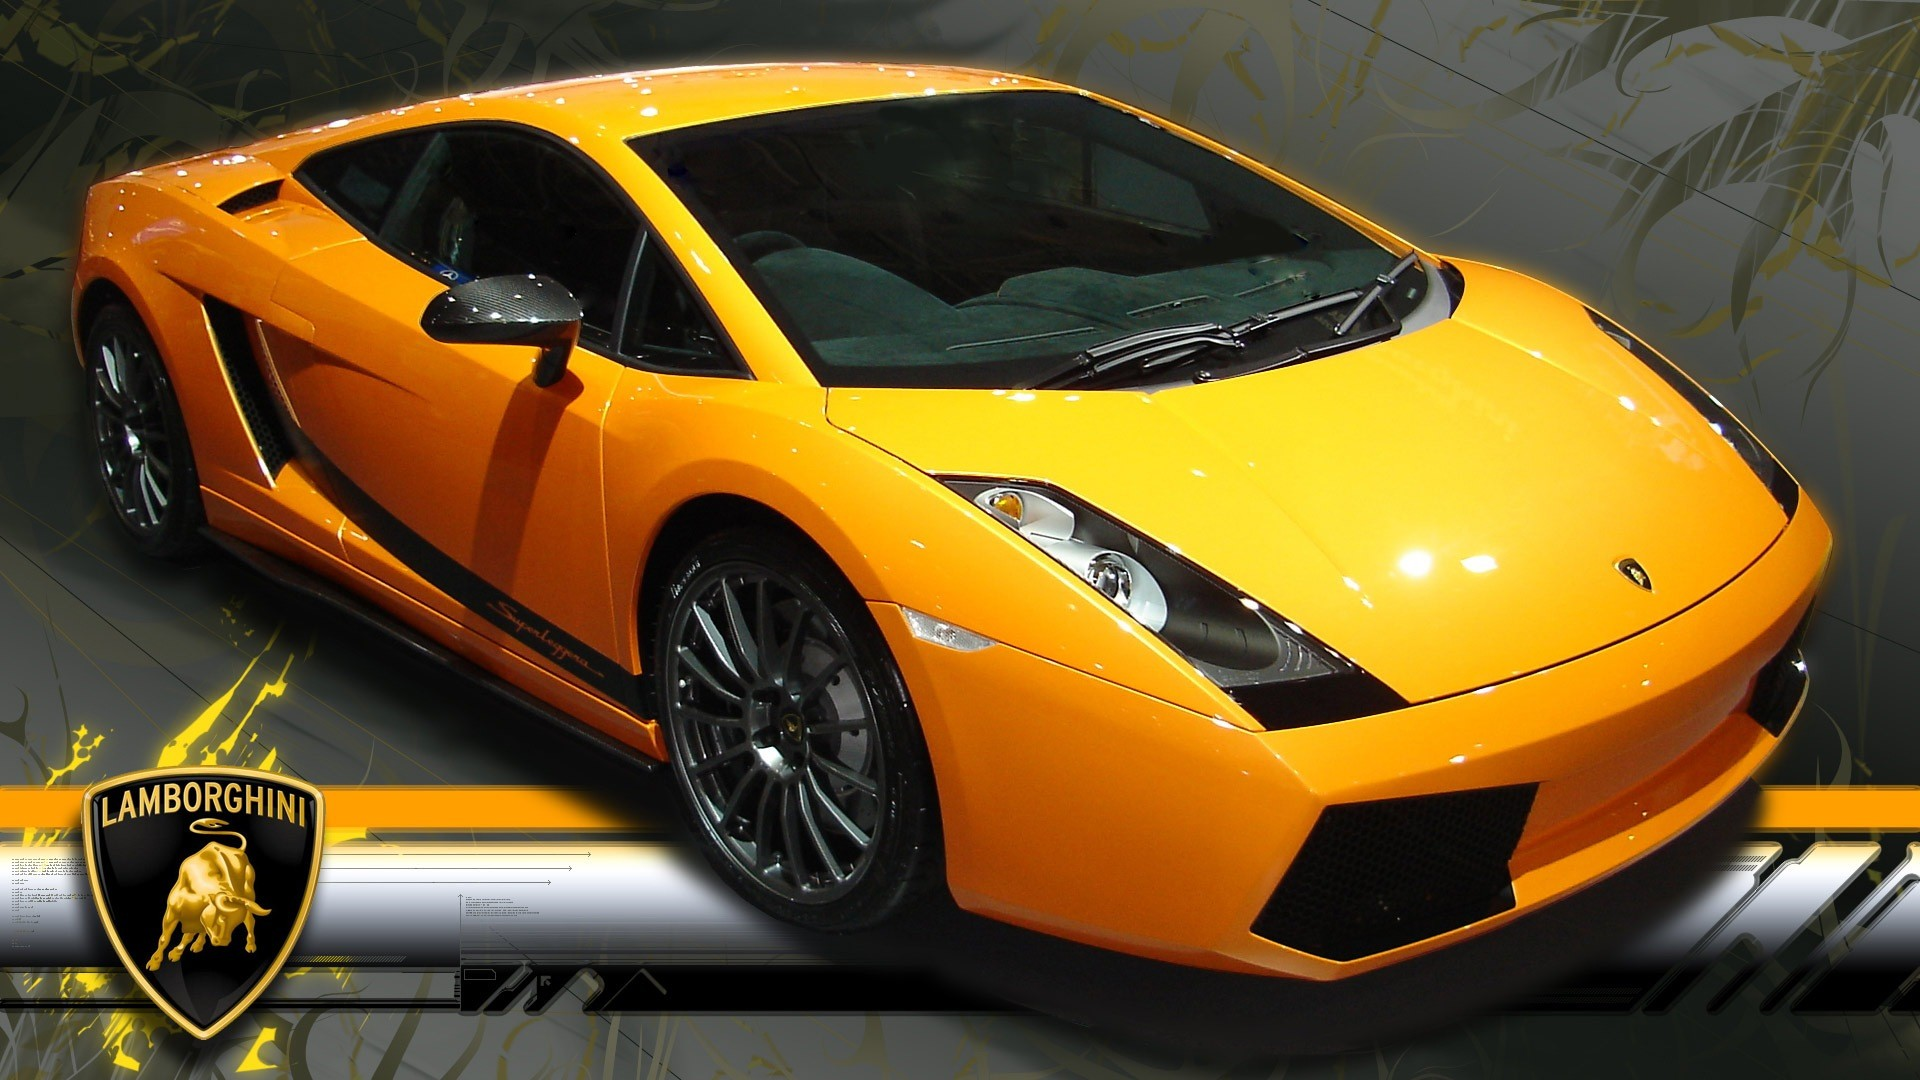 1920x1080 Car wallpapers: Lamborghini Gallardo